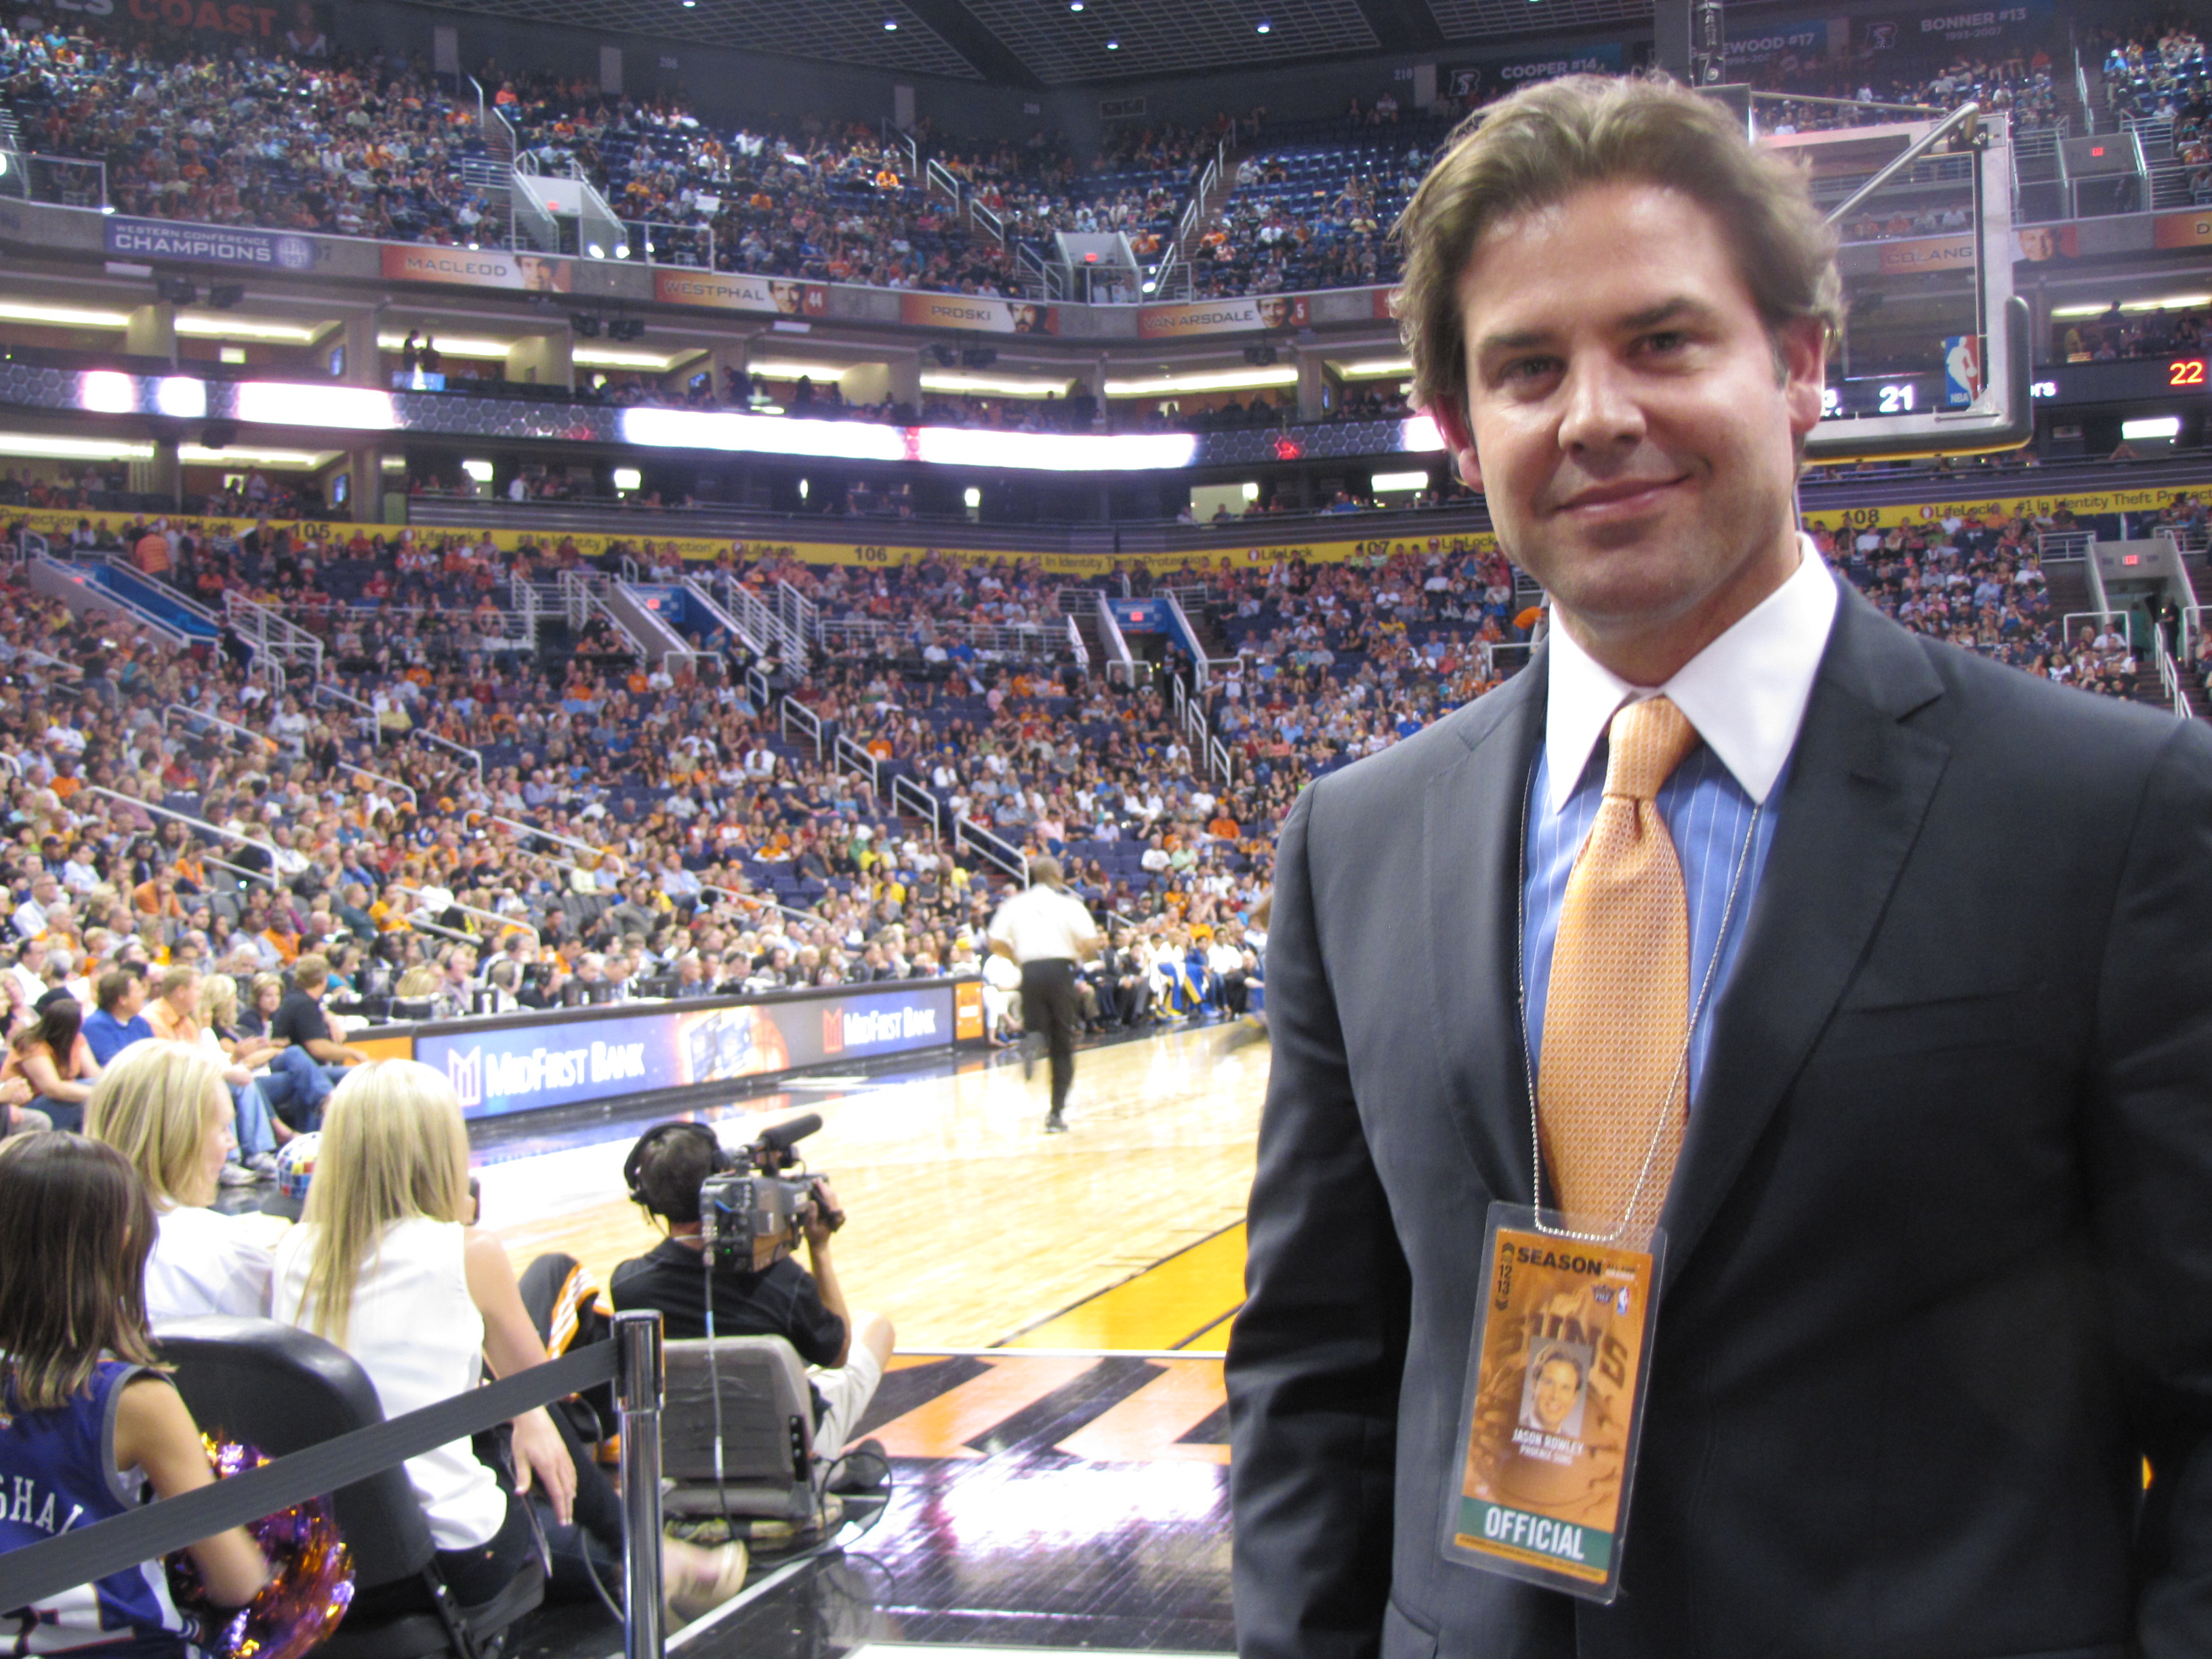 Phoenix Suns President Jason Rowley hopes the team can grow its fan base in Mexico.